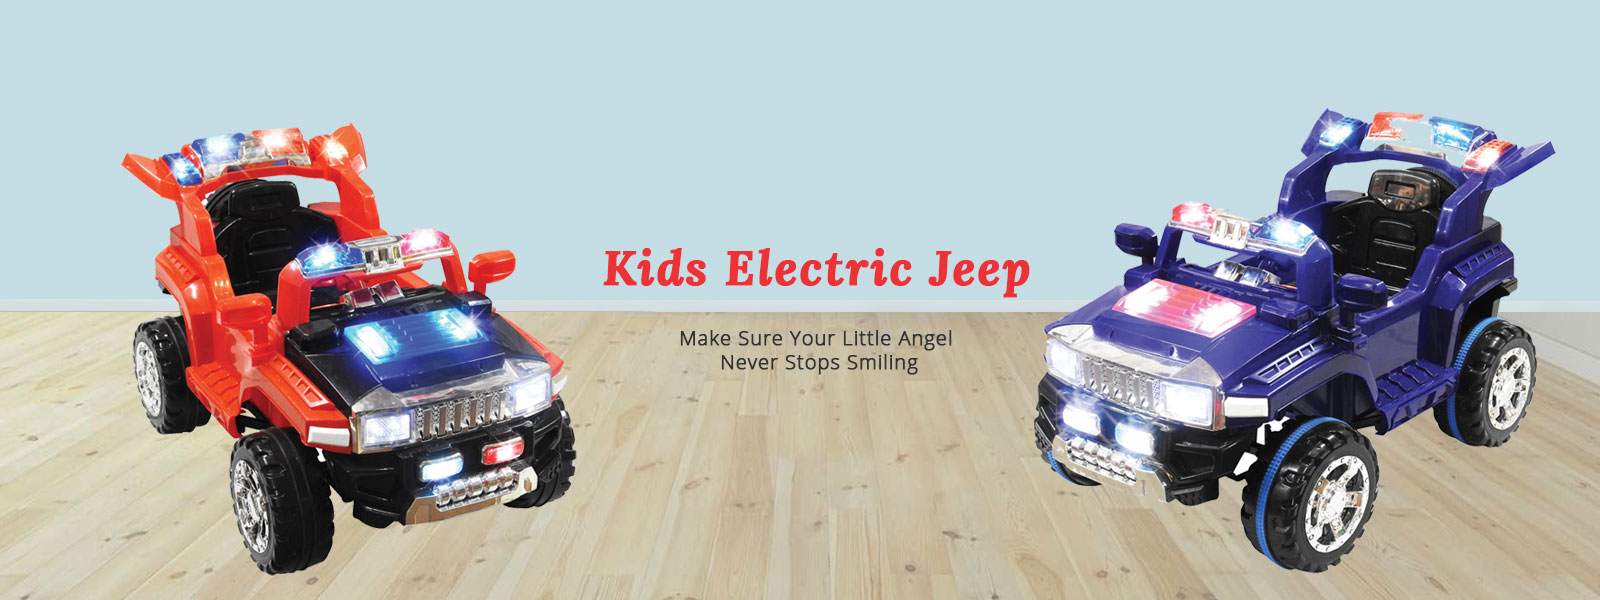 Kids Electric Jeep Manufacturers in Ranchi